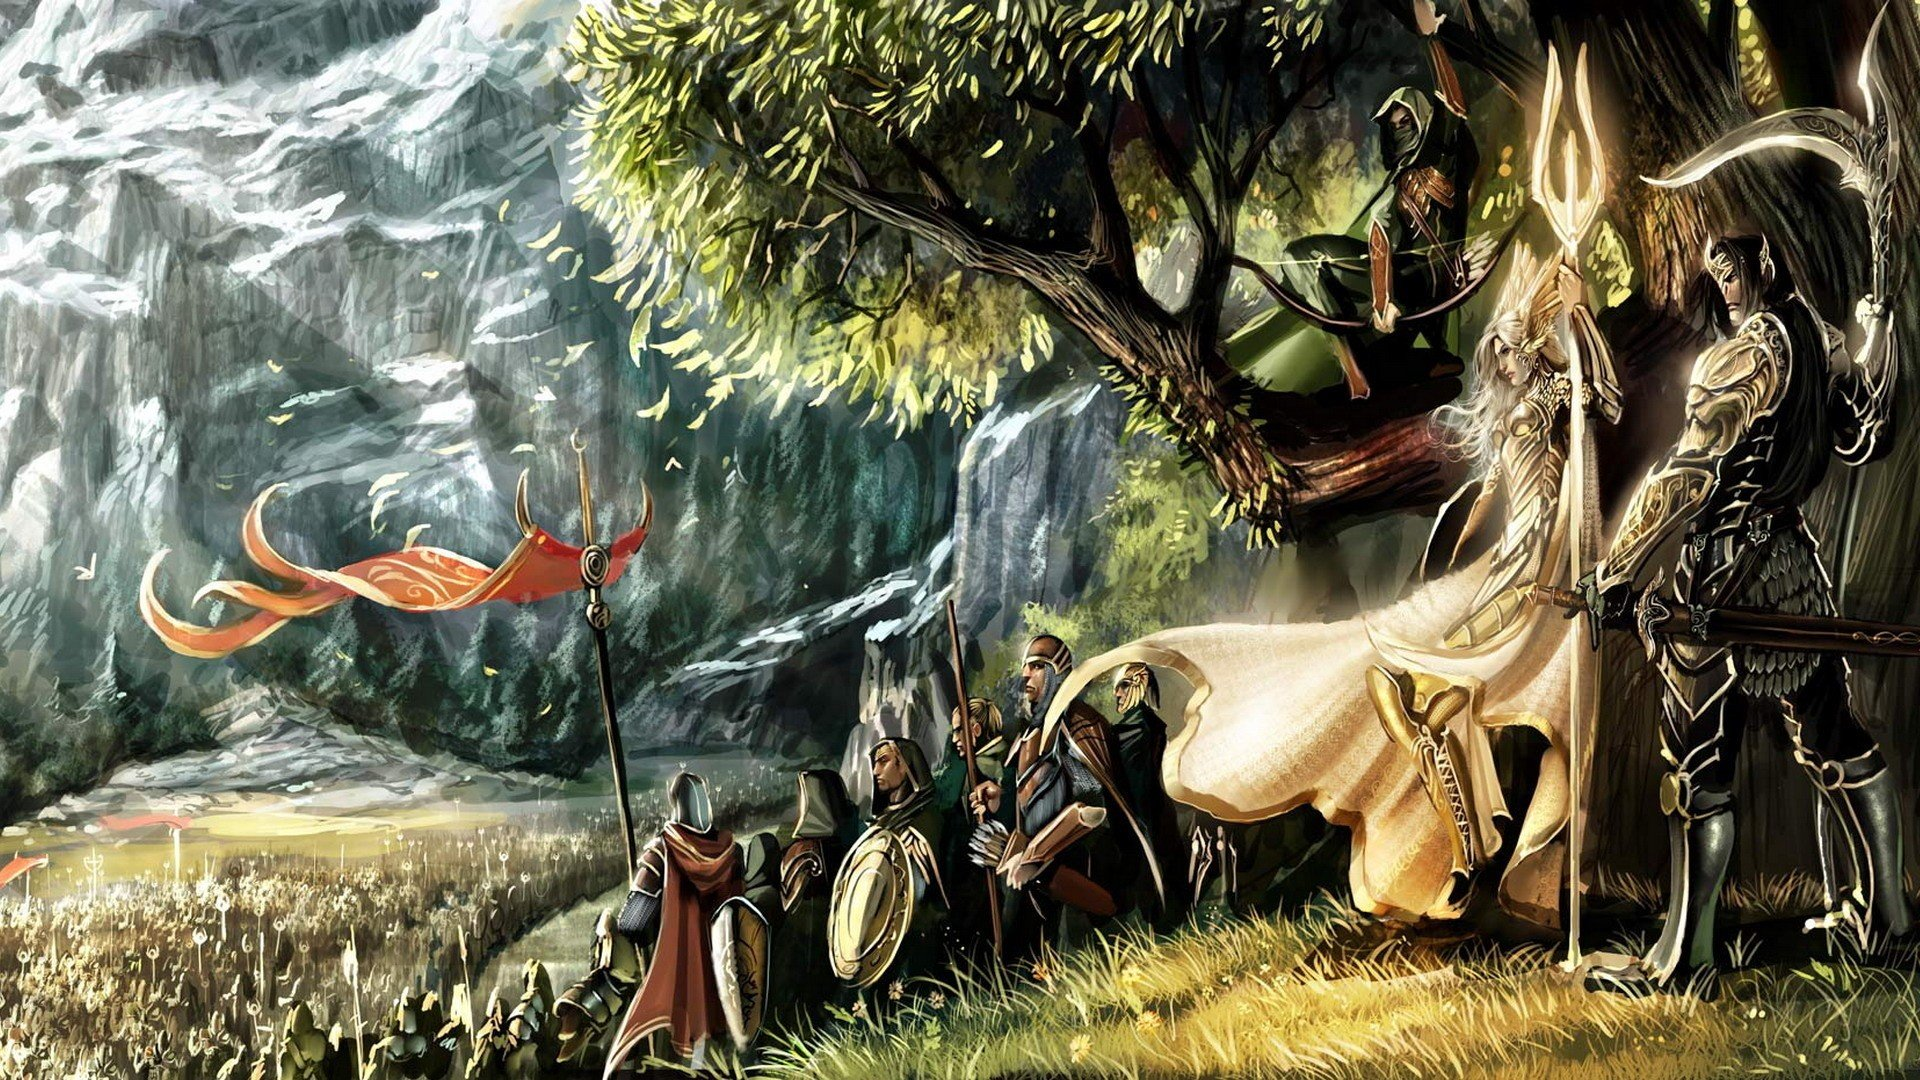 The Lord Of The Rings (LOTR) wallpapers 1920x1080 Full HD ...